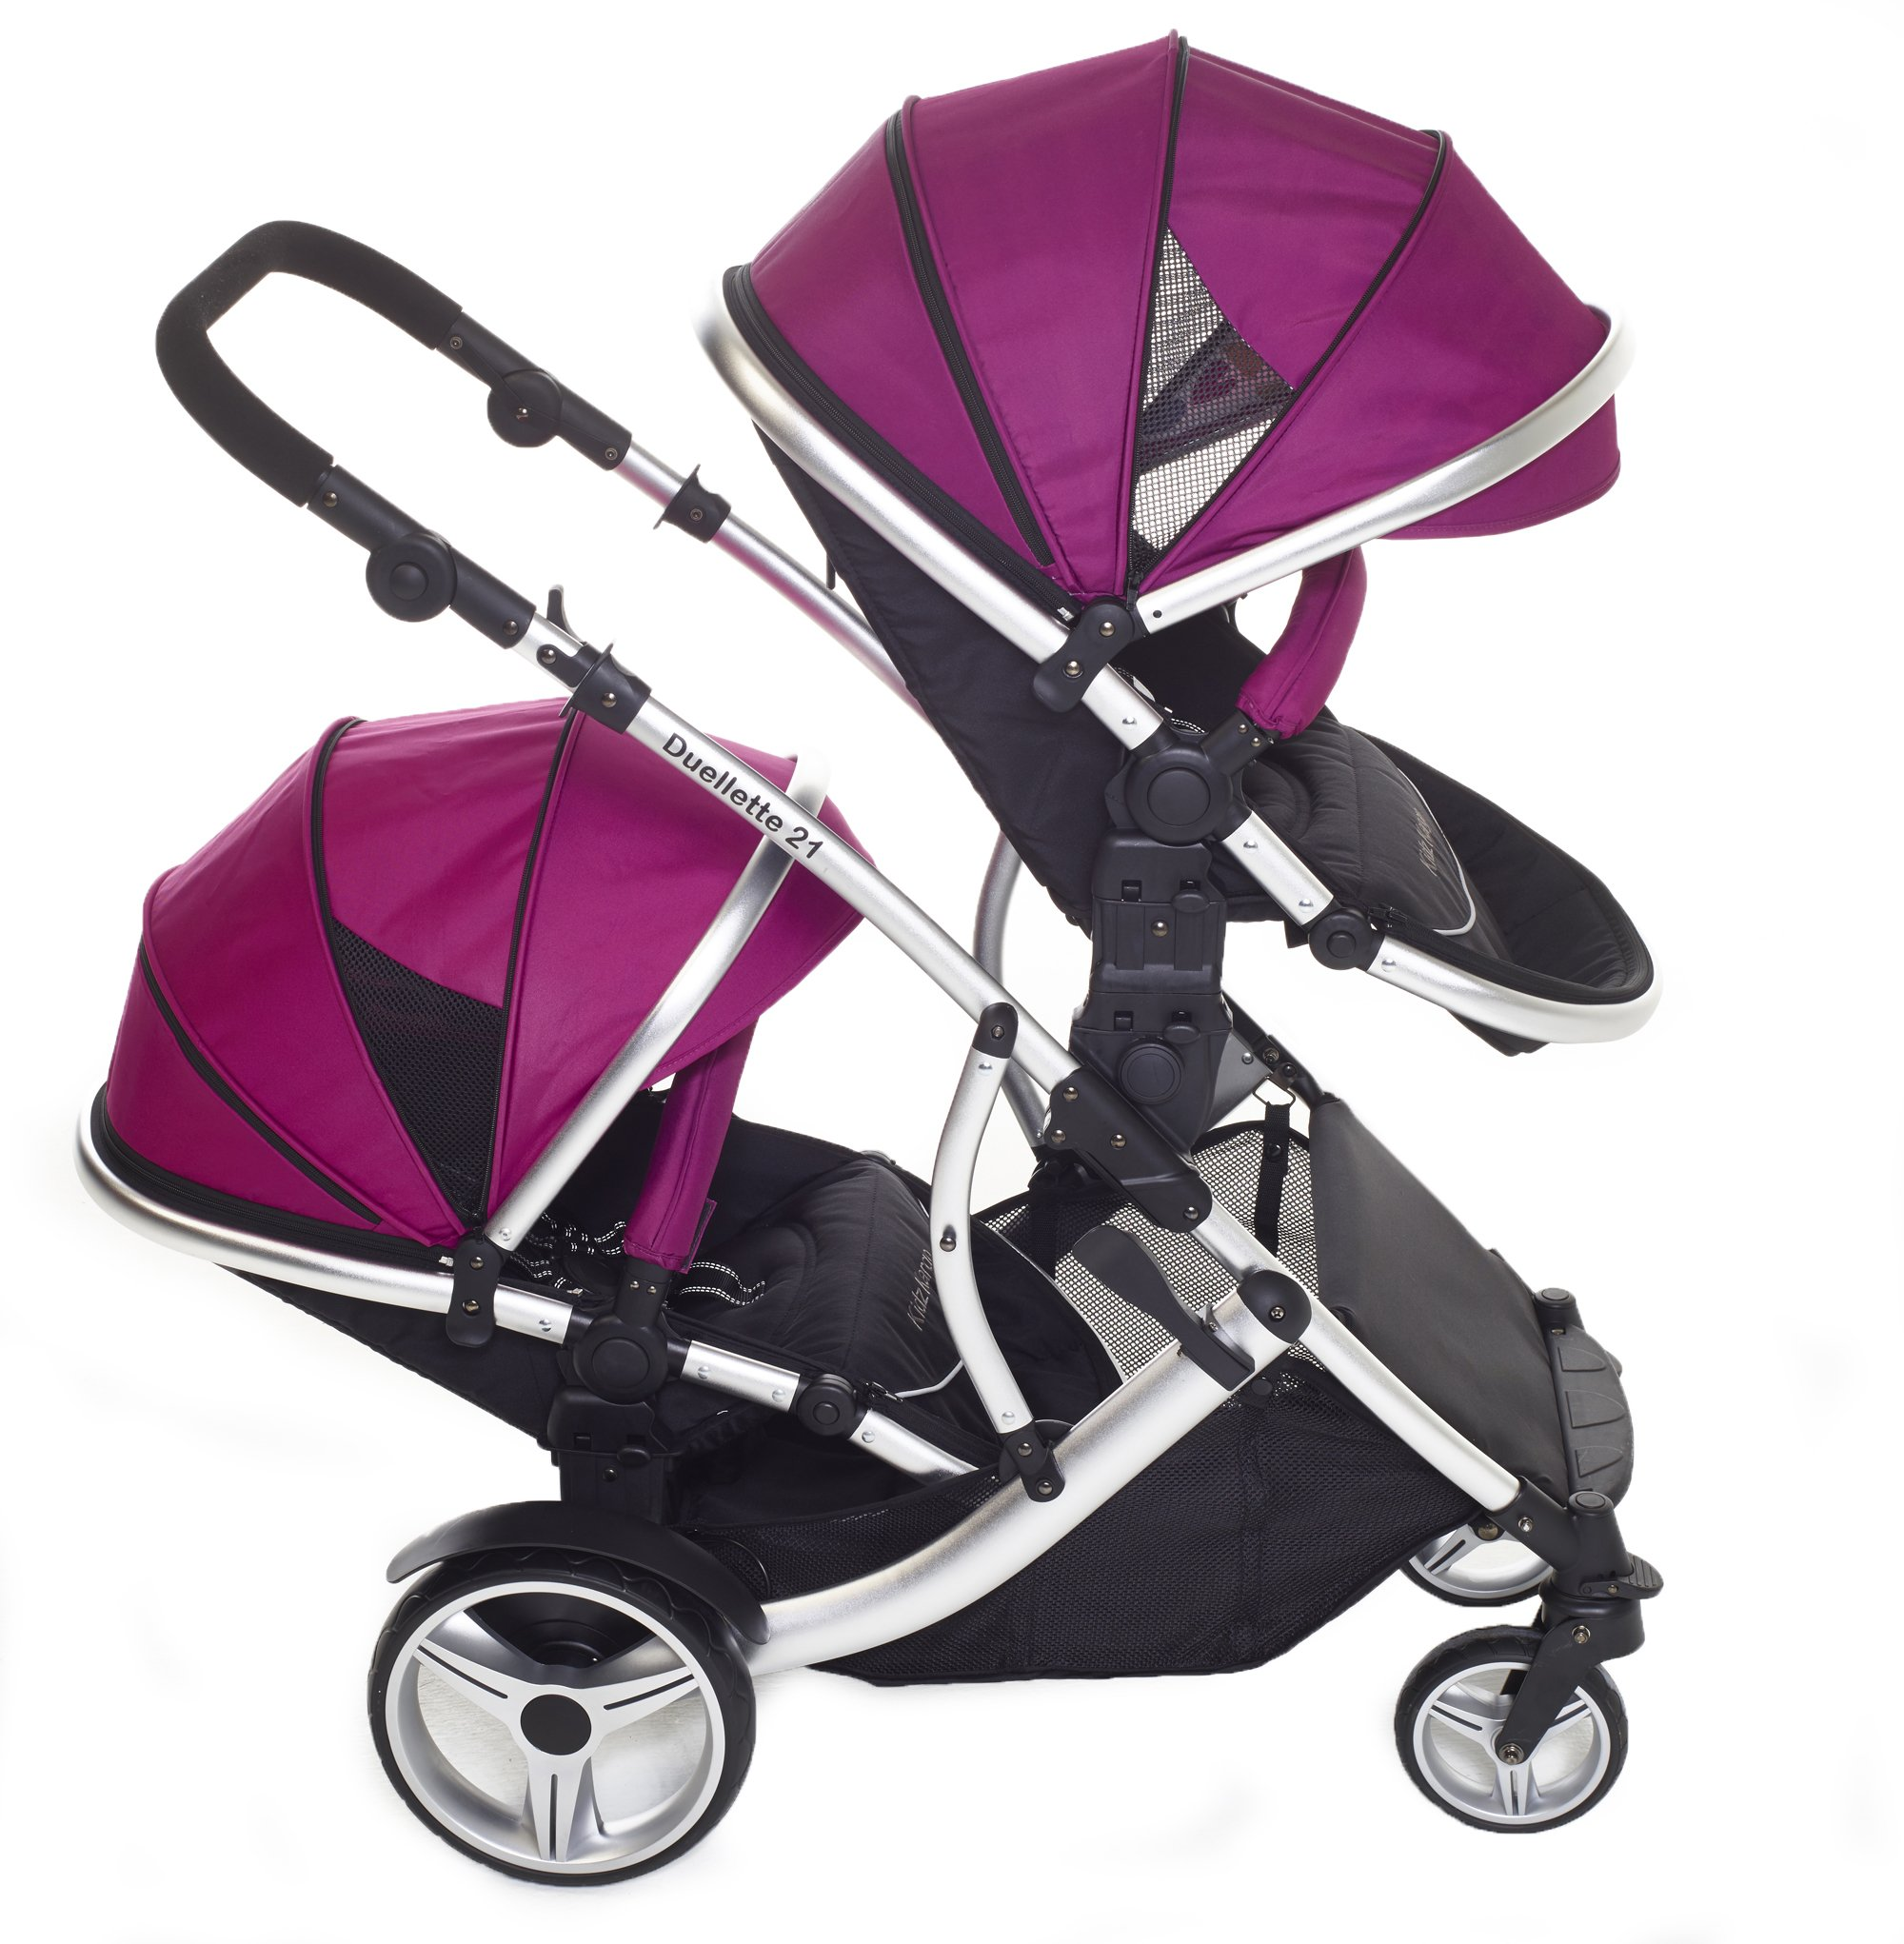 Kids Kargo Double Twin Tandem Pushchair. Duellette Combi Suitable from birth, Carrycot converts to toddler seat unit. Stroller by Kids Kargo (Dooglebug Raspberry)  Versatile. Suitable for Newborn Twins Compatible with car seats; Kidz Kargo, Britax Baby safe or Maxi Cosi adaptors. carrycots have mattress and soft lining, which zip off. Remove lining and lid, when baby grows out of carrycot mode, converts to seat unit 5